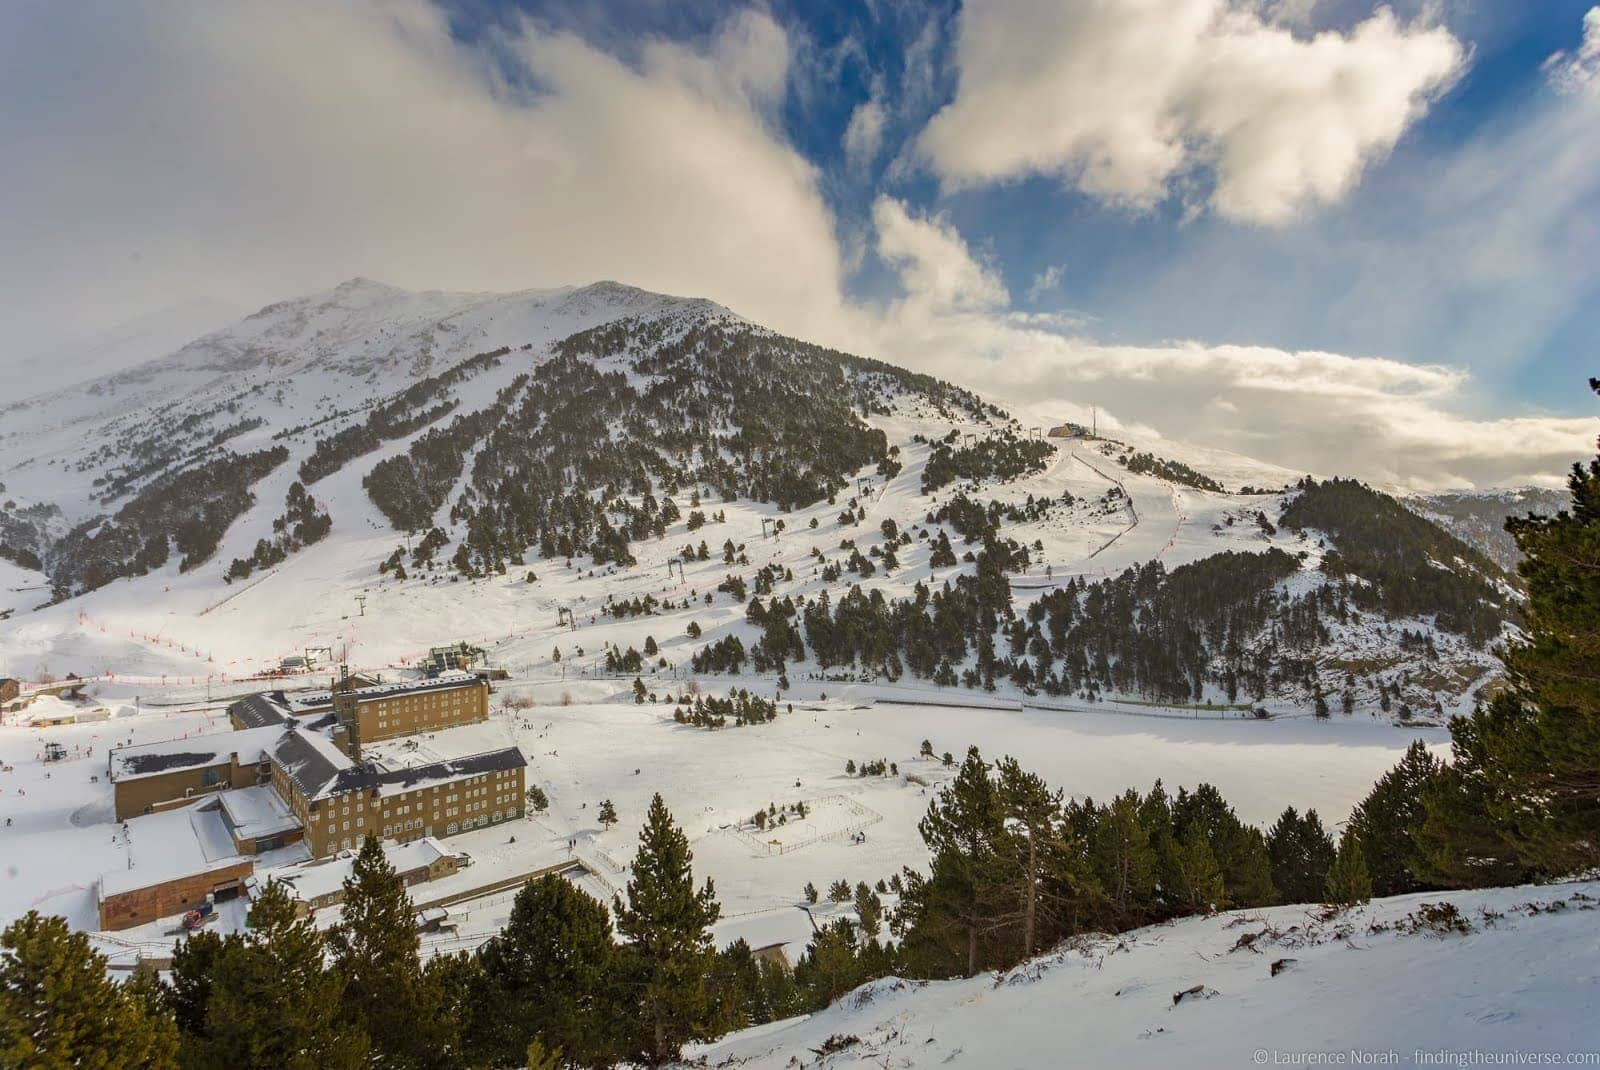 Skiing in Spain - Val de Nuria Ski Resort Pyrenees_by_Laurence Norah